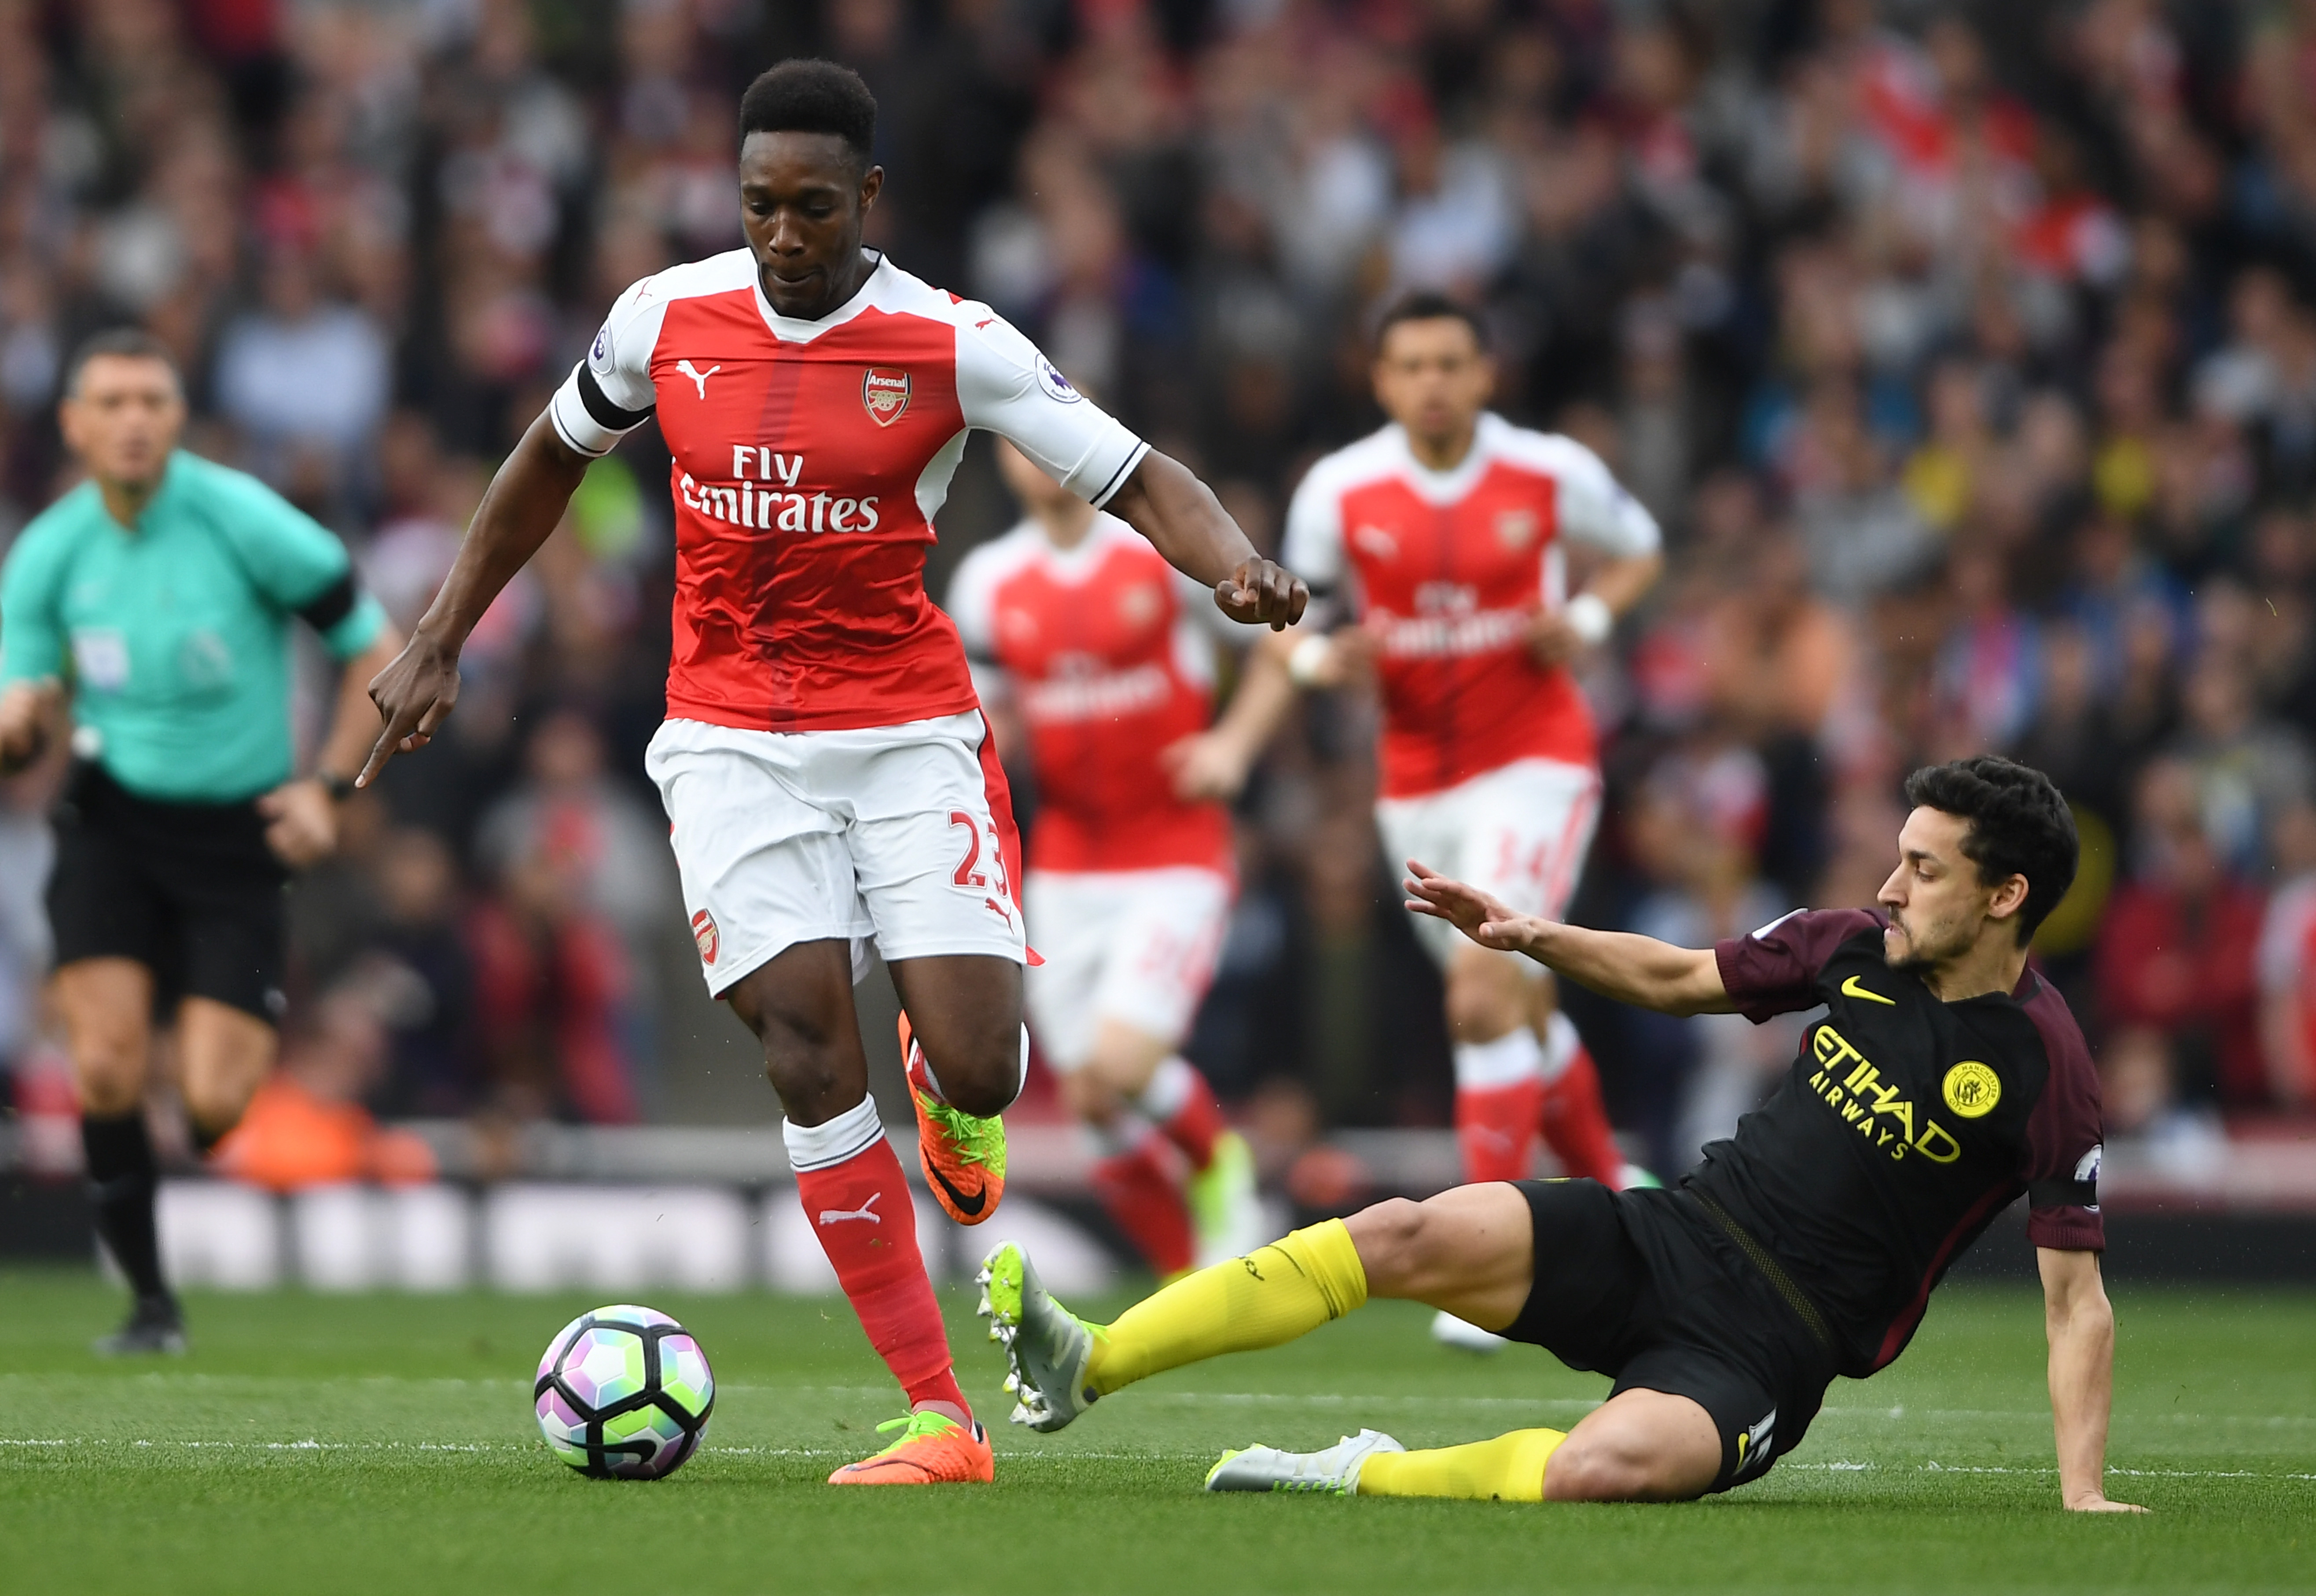 Arsenal Vs Manchester City: 5 Things We Learned